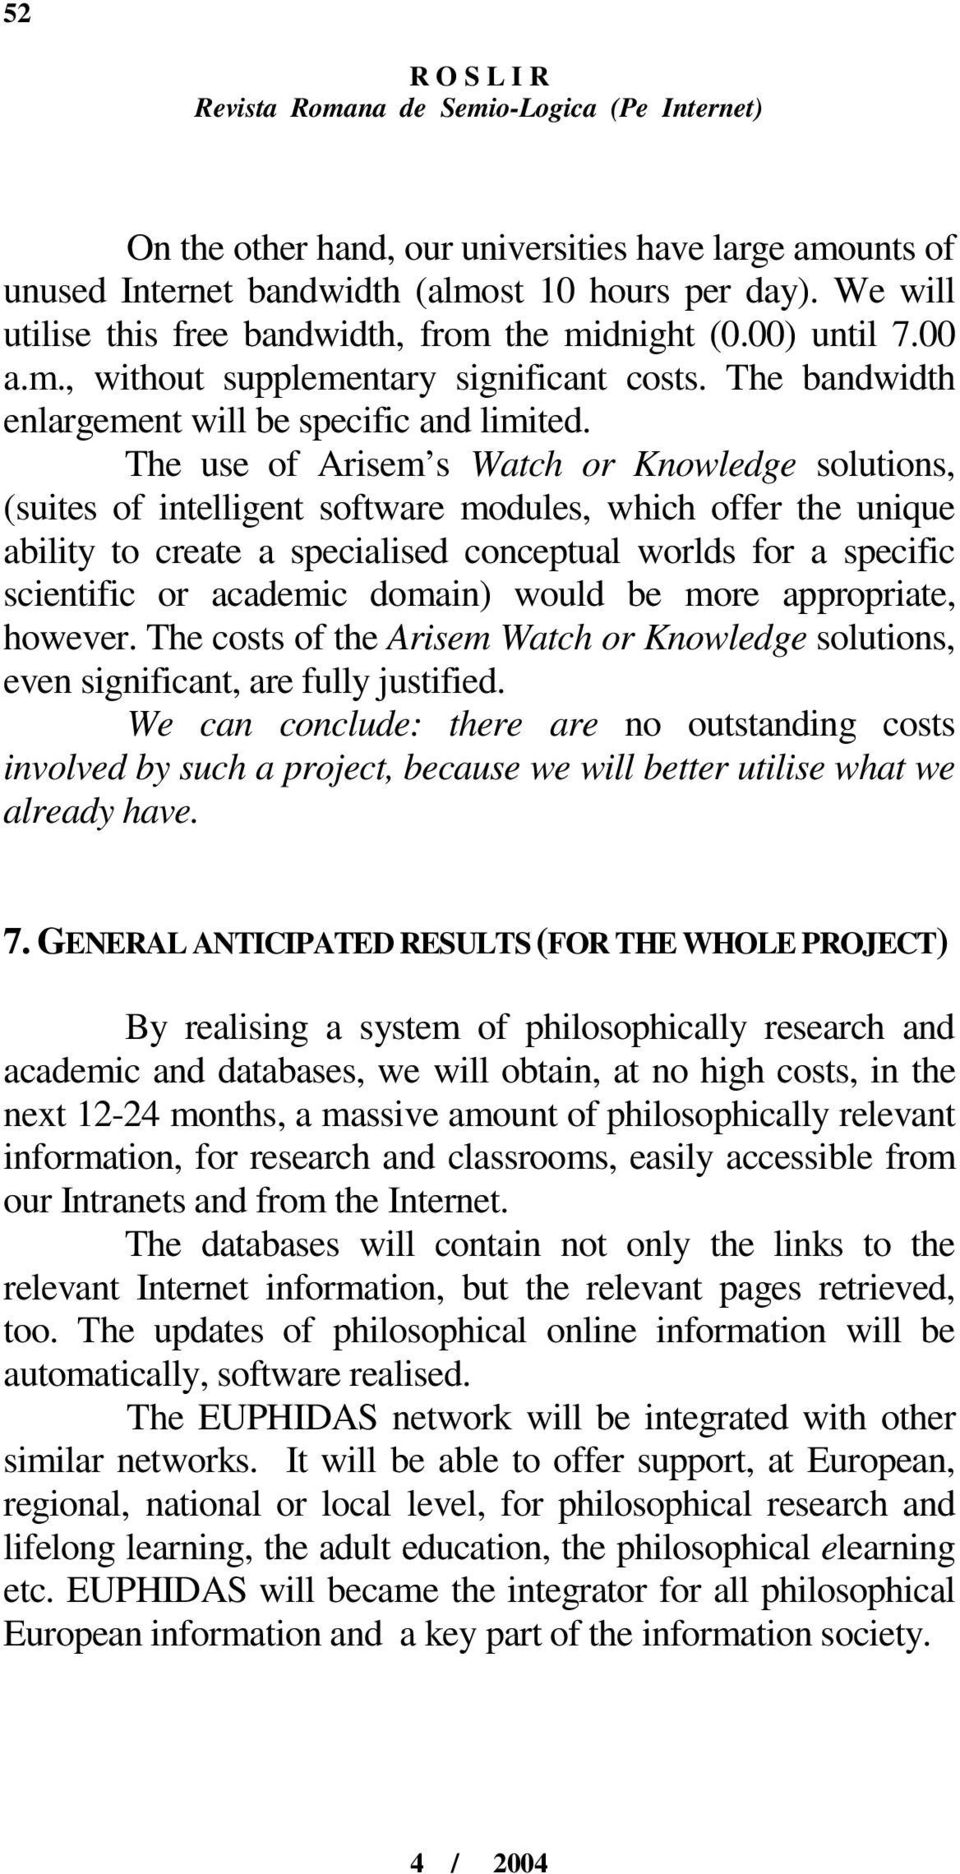 The use of Arisem s Watch or Knowledge solutions, (suites of intelligent software modules, which offer the unique ability to create a specialised conceptual worlds for a specific scientific or